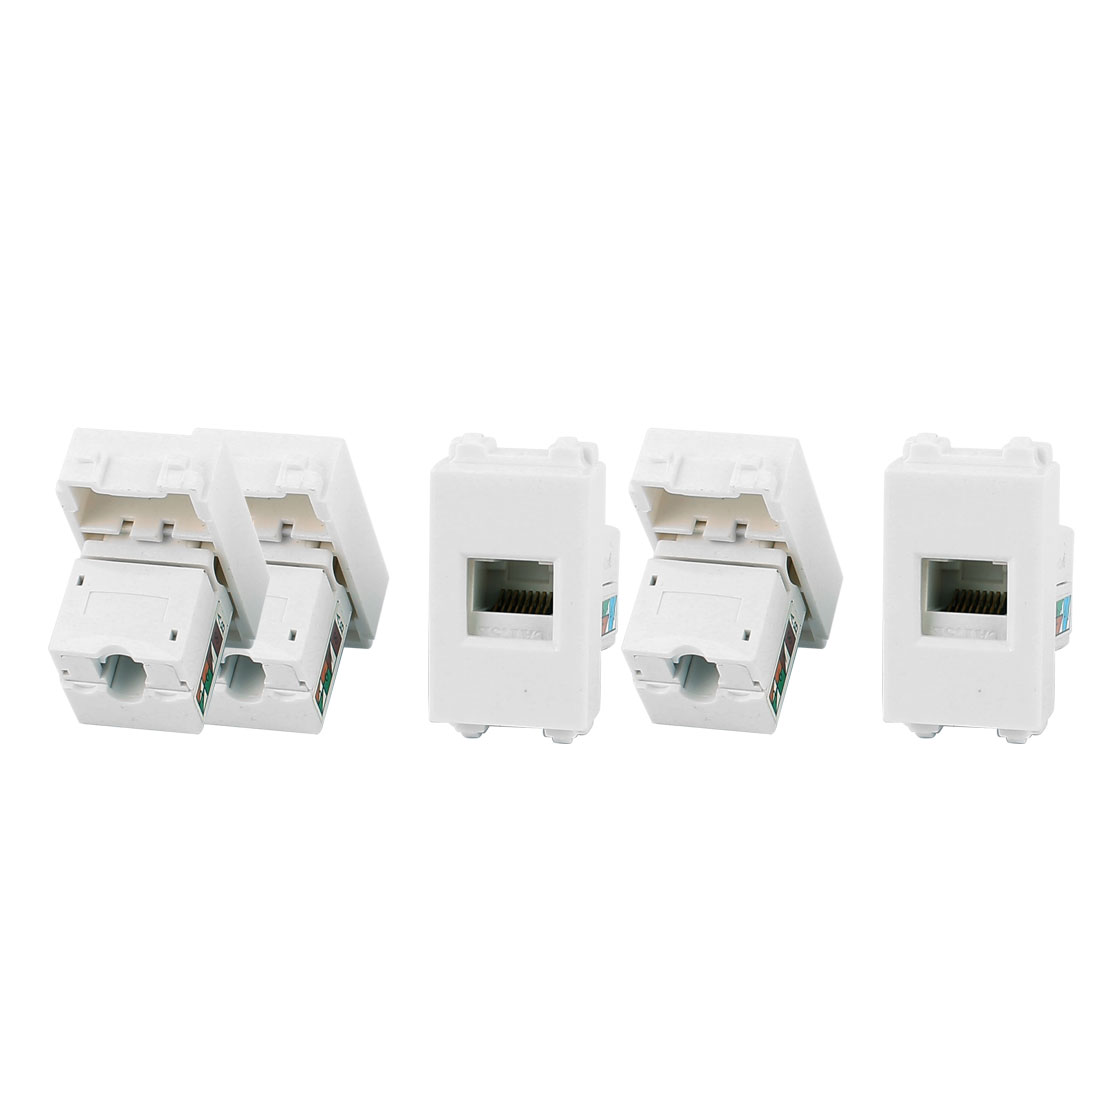 5 Pcs RJ45 8P8C PC Notebook Network Coupler Connect Modular Socket for 128 Wall Plate Panel